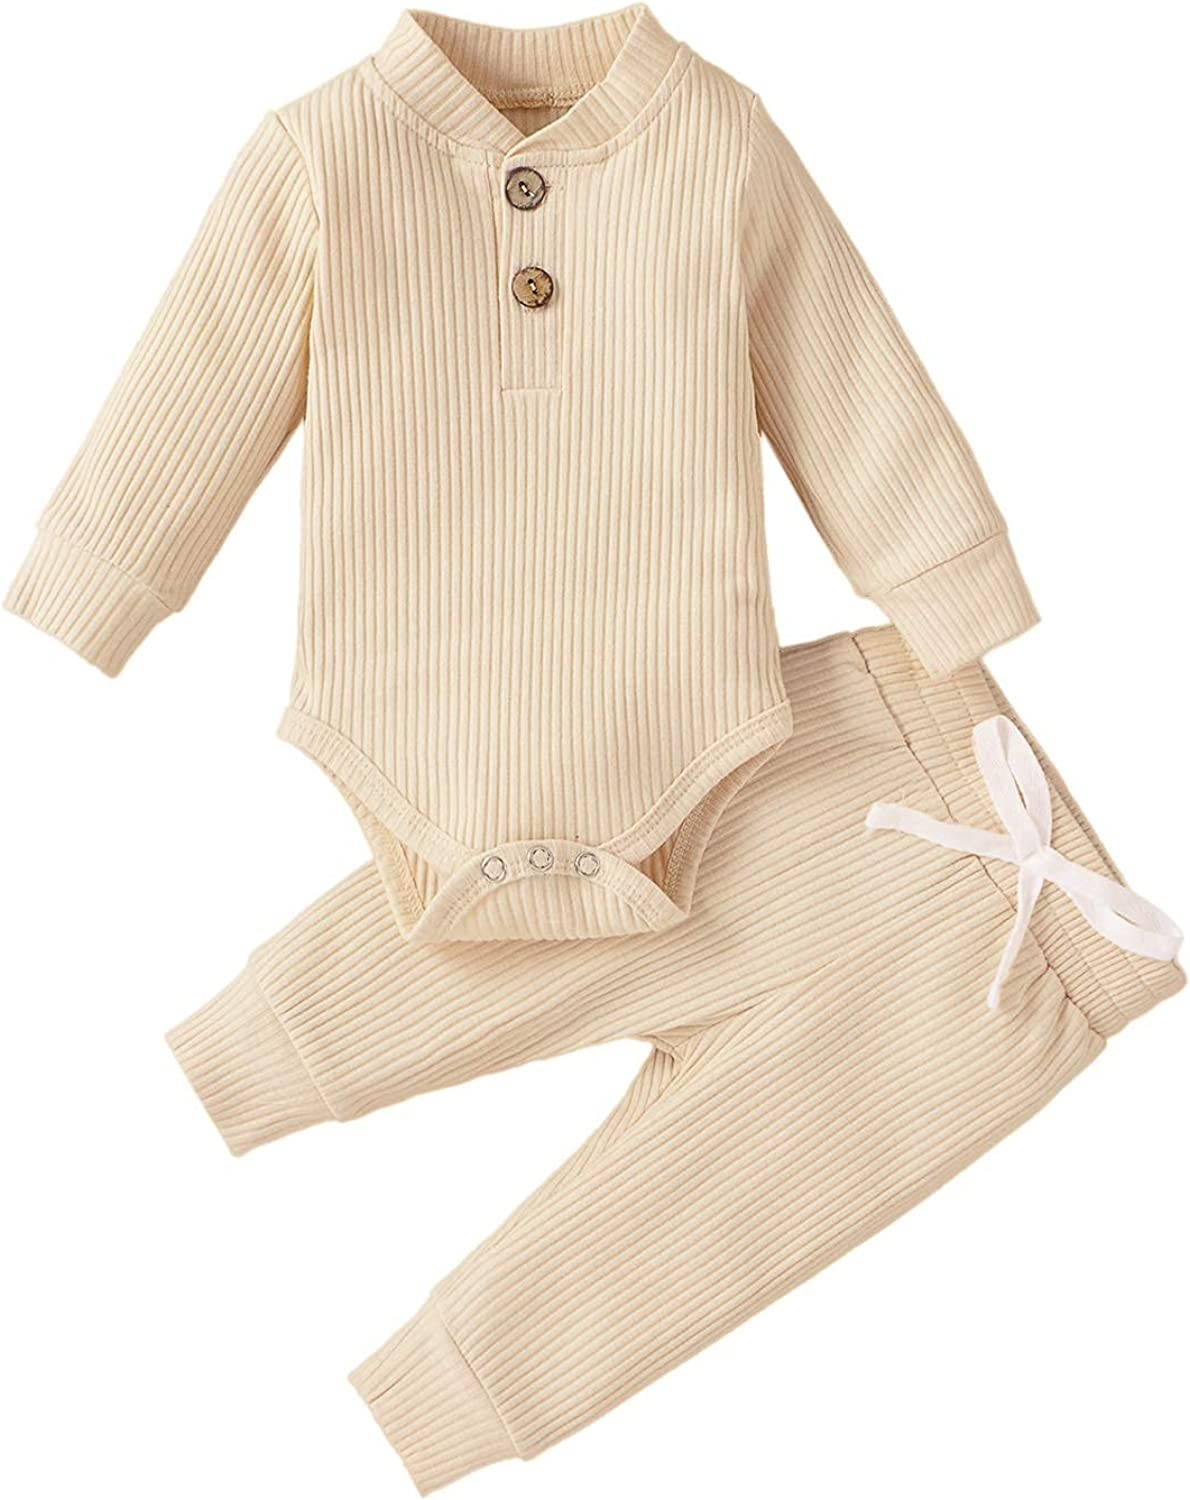 Infant Baby Boys Girls Pajama Set Toddler Clothes Snug fit Basic Cotton Sleepwear pjs For Daily